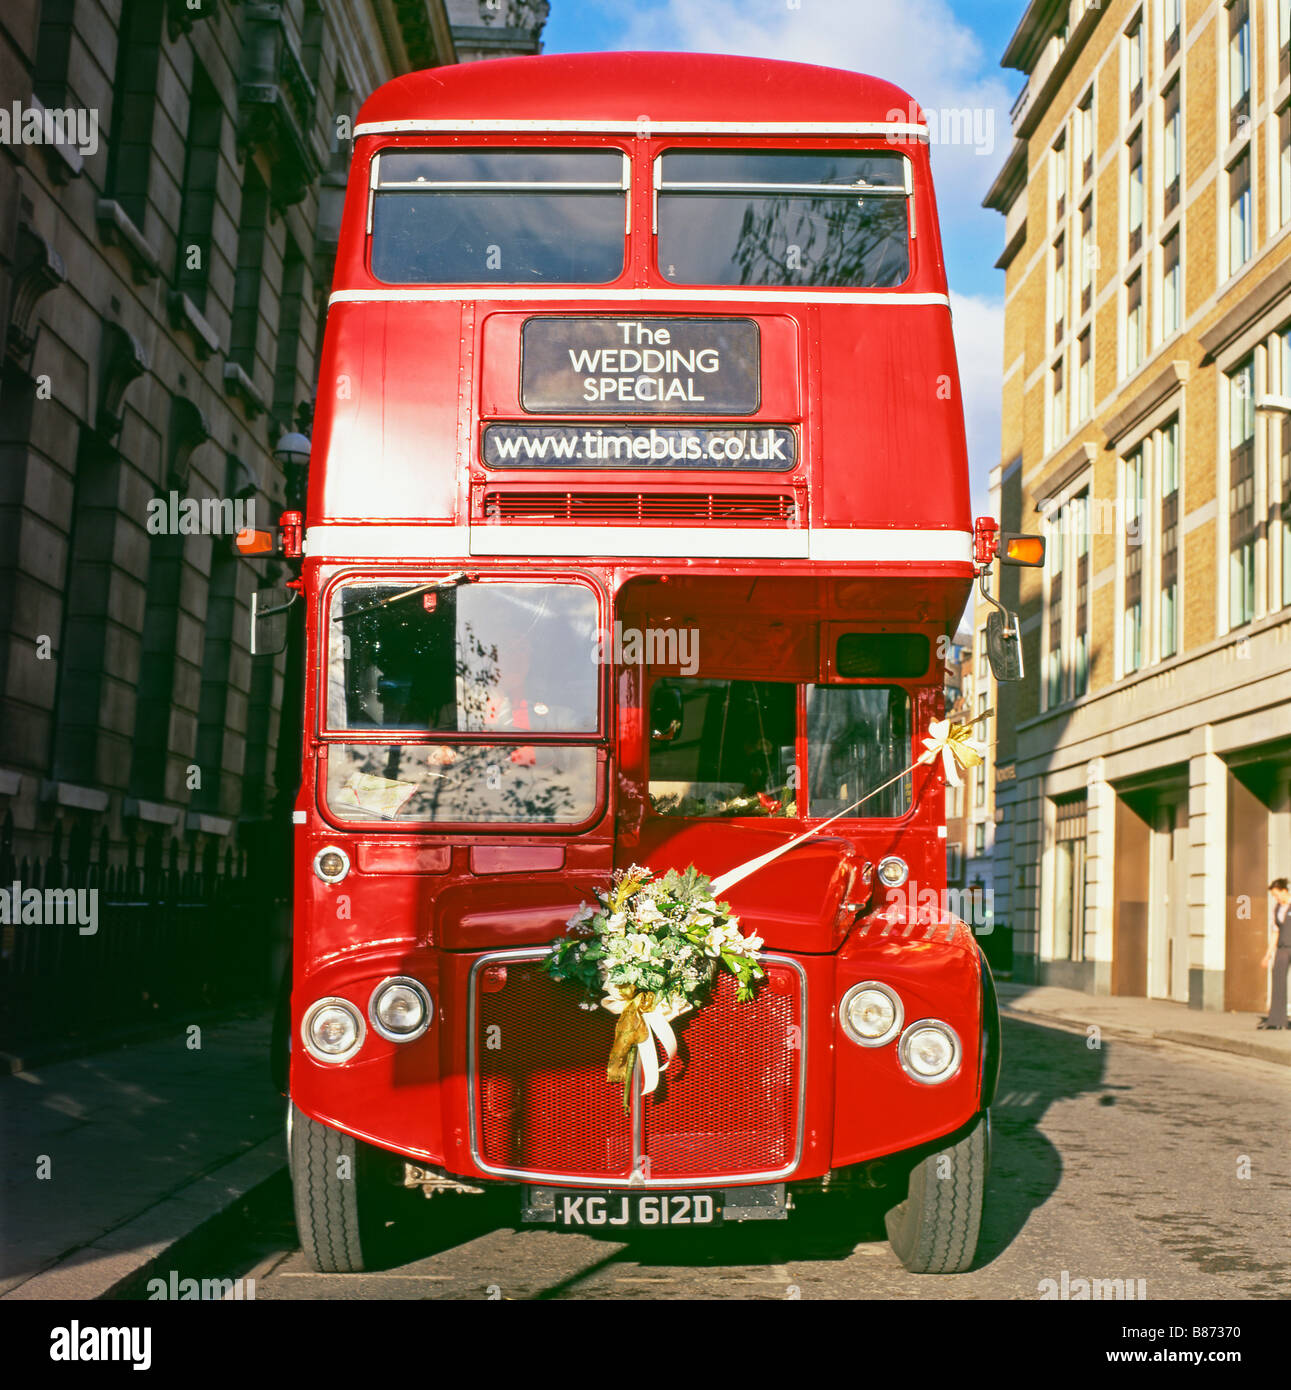 The Wedding Special Routemaster Red London Double Decker Bus England UK 2008